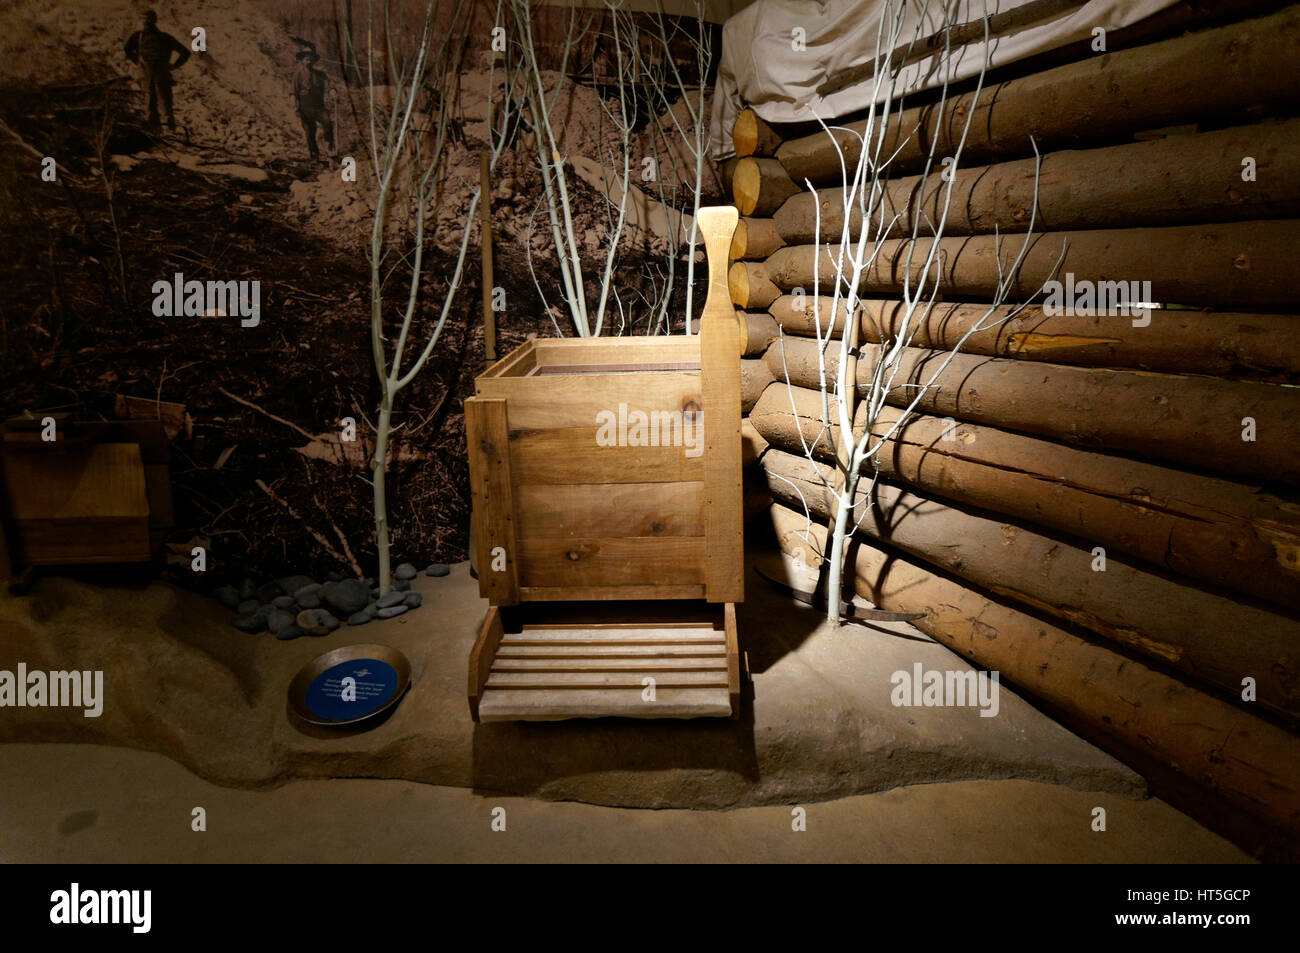 Gold panning equipment display in the Klondike Gold Rush National Historical Park Visitor Center, Pioneer Square - Stock Image